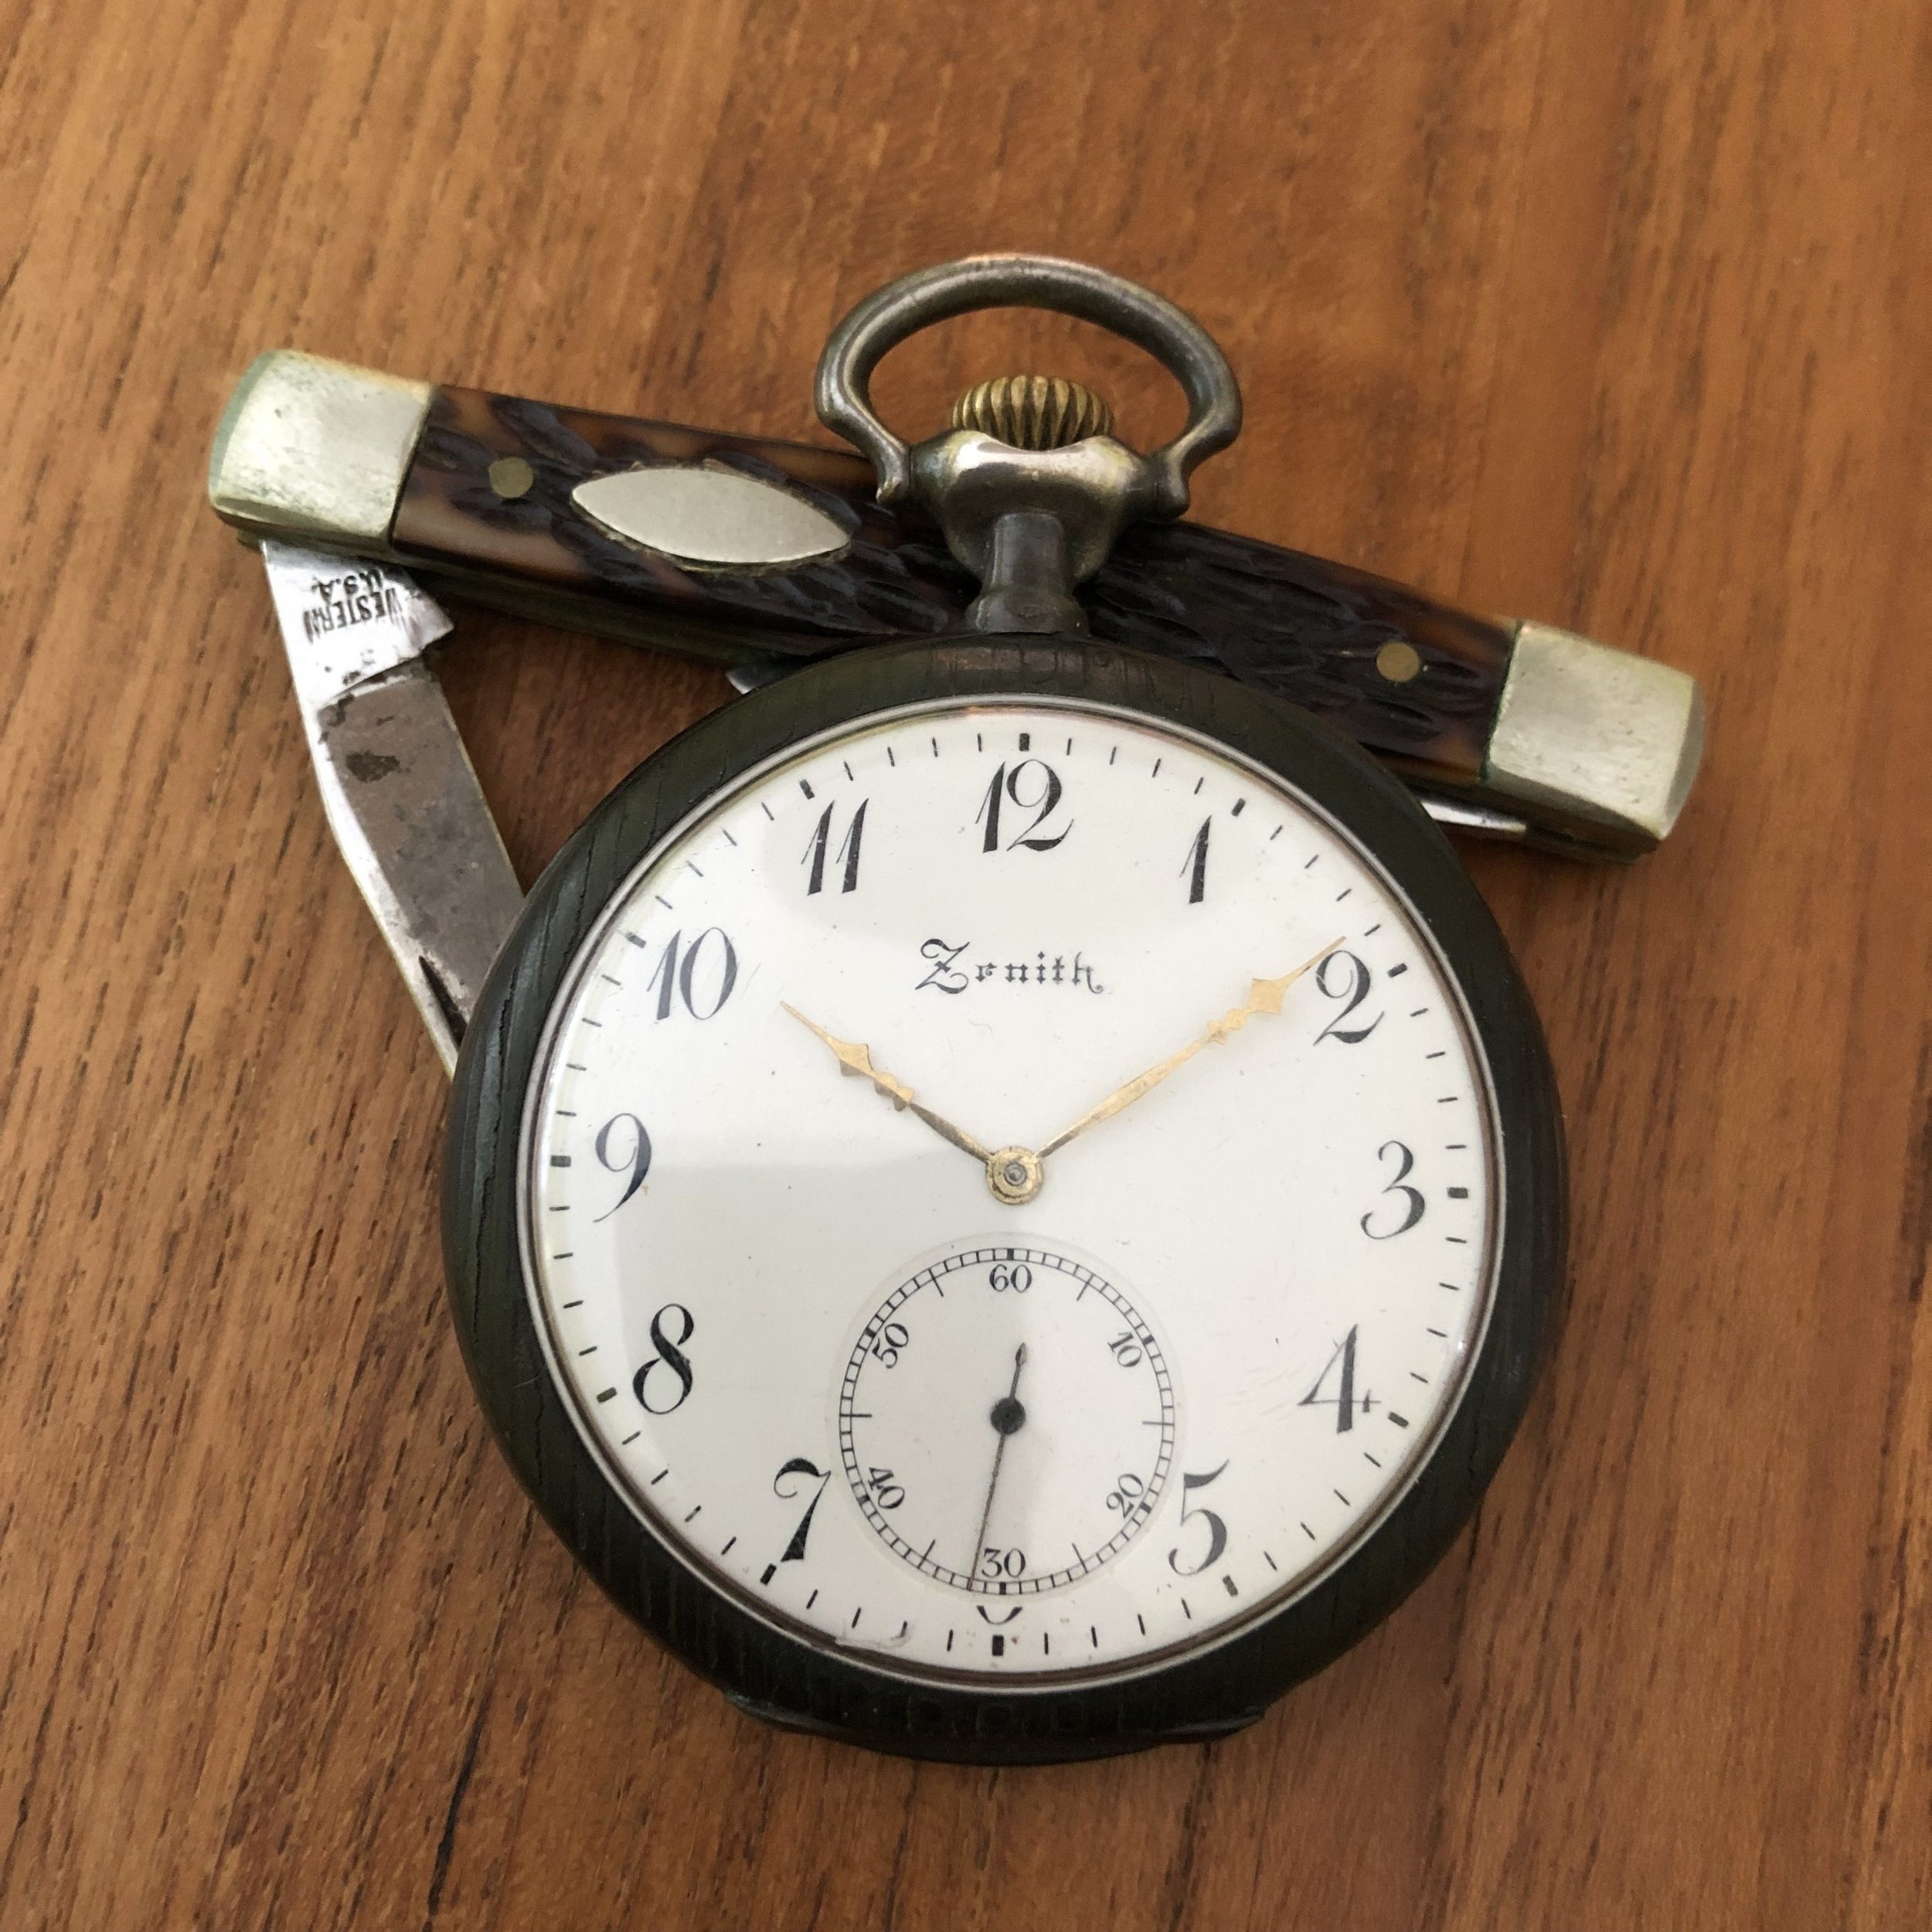 My grandfather's pocket watch and his dime store Western pocket knife, which I found while researching this article.